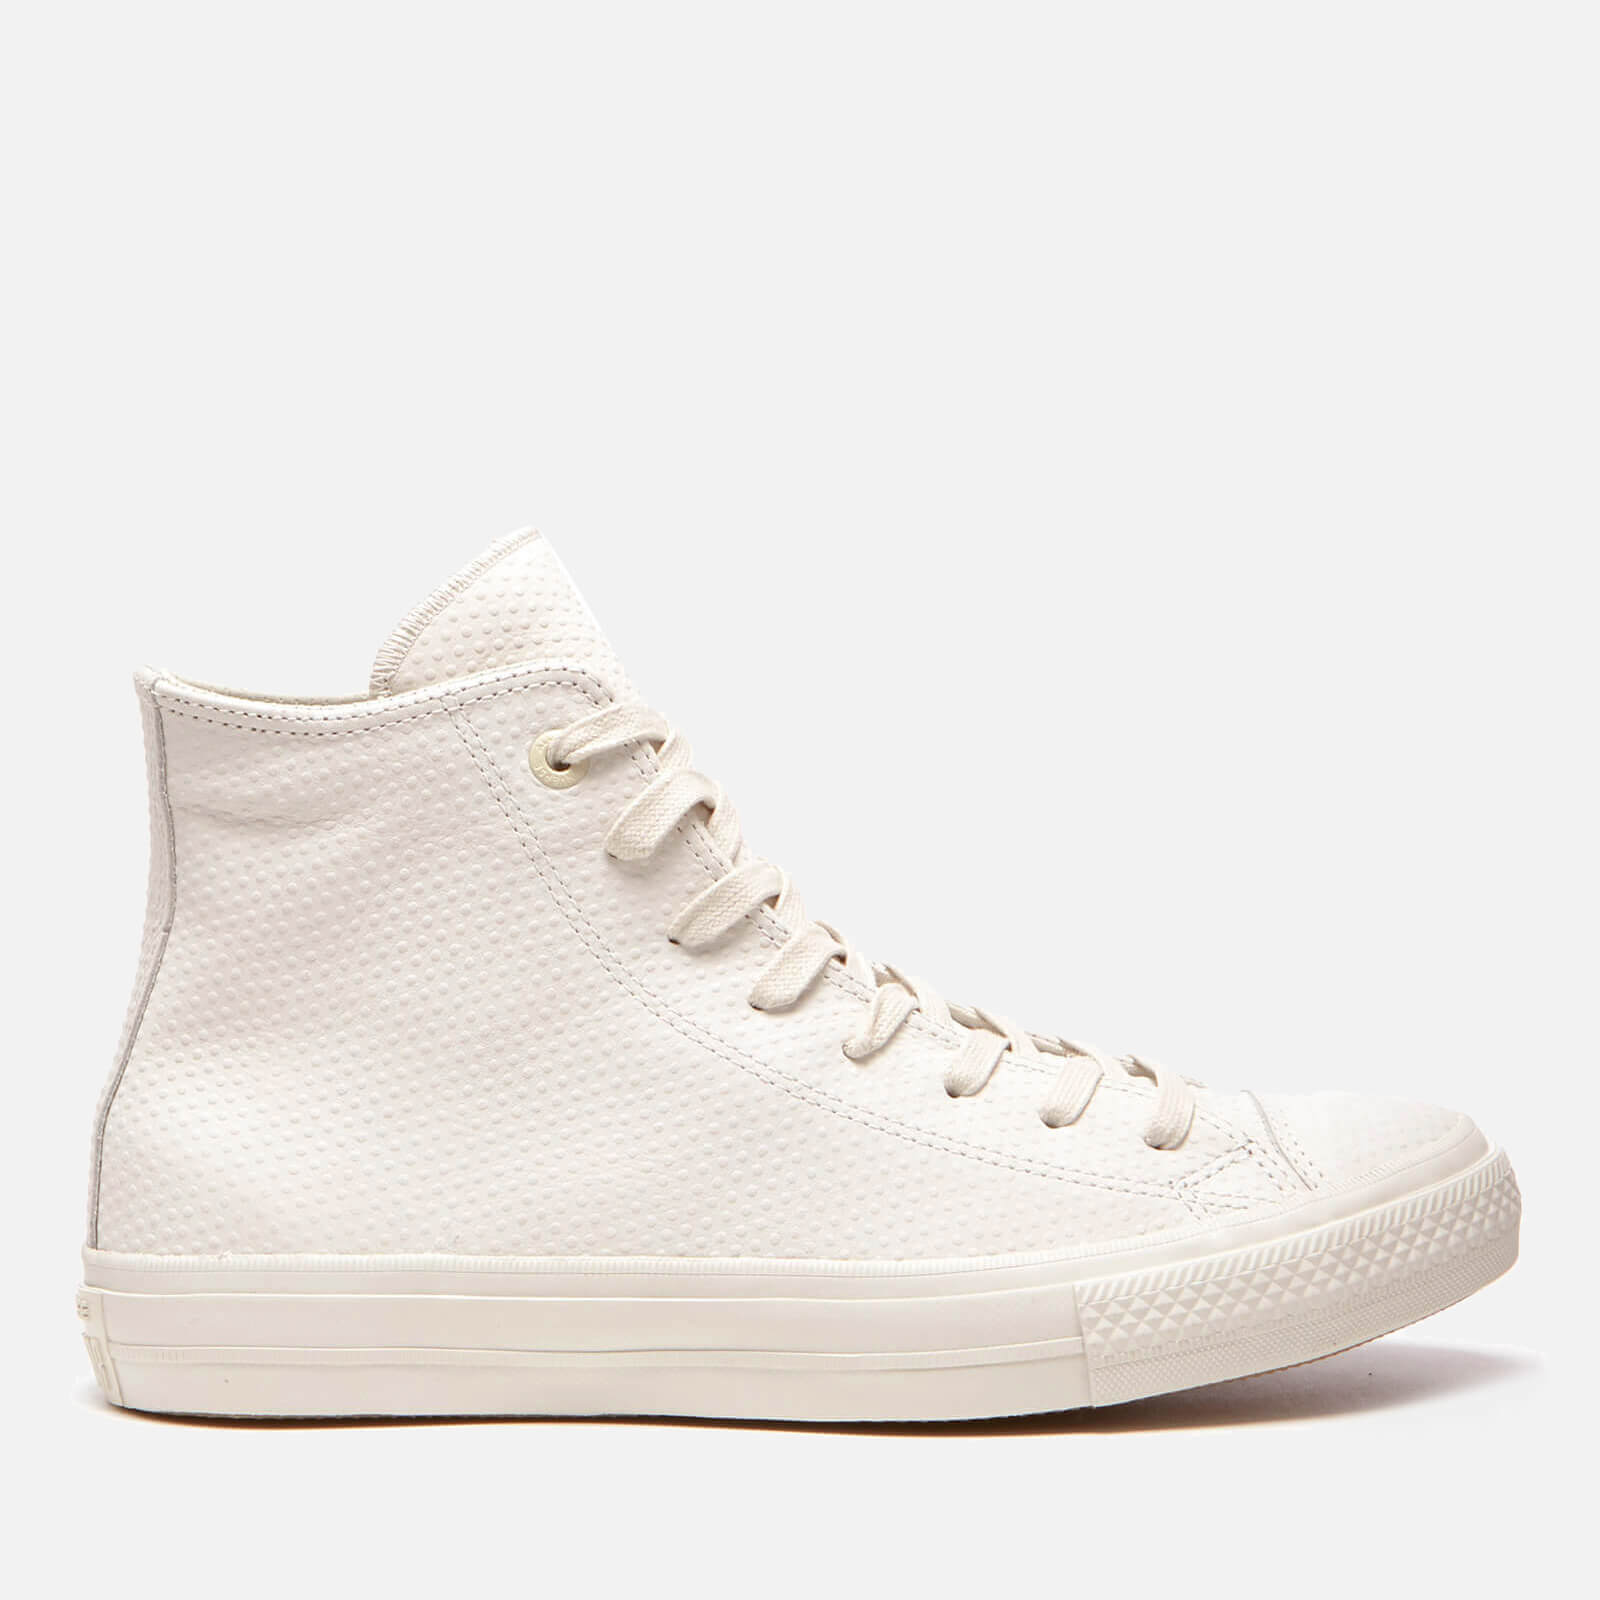 pretty nice 1a15b e2f53 Converse Men s Chuck Taylor All Star II Hi-Top Trainers - Buff Gum - Free  UK Delivery over £50